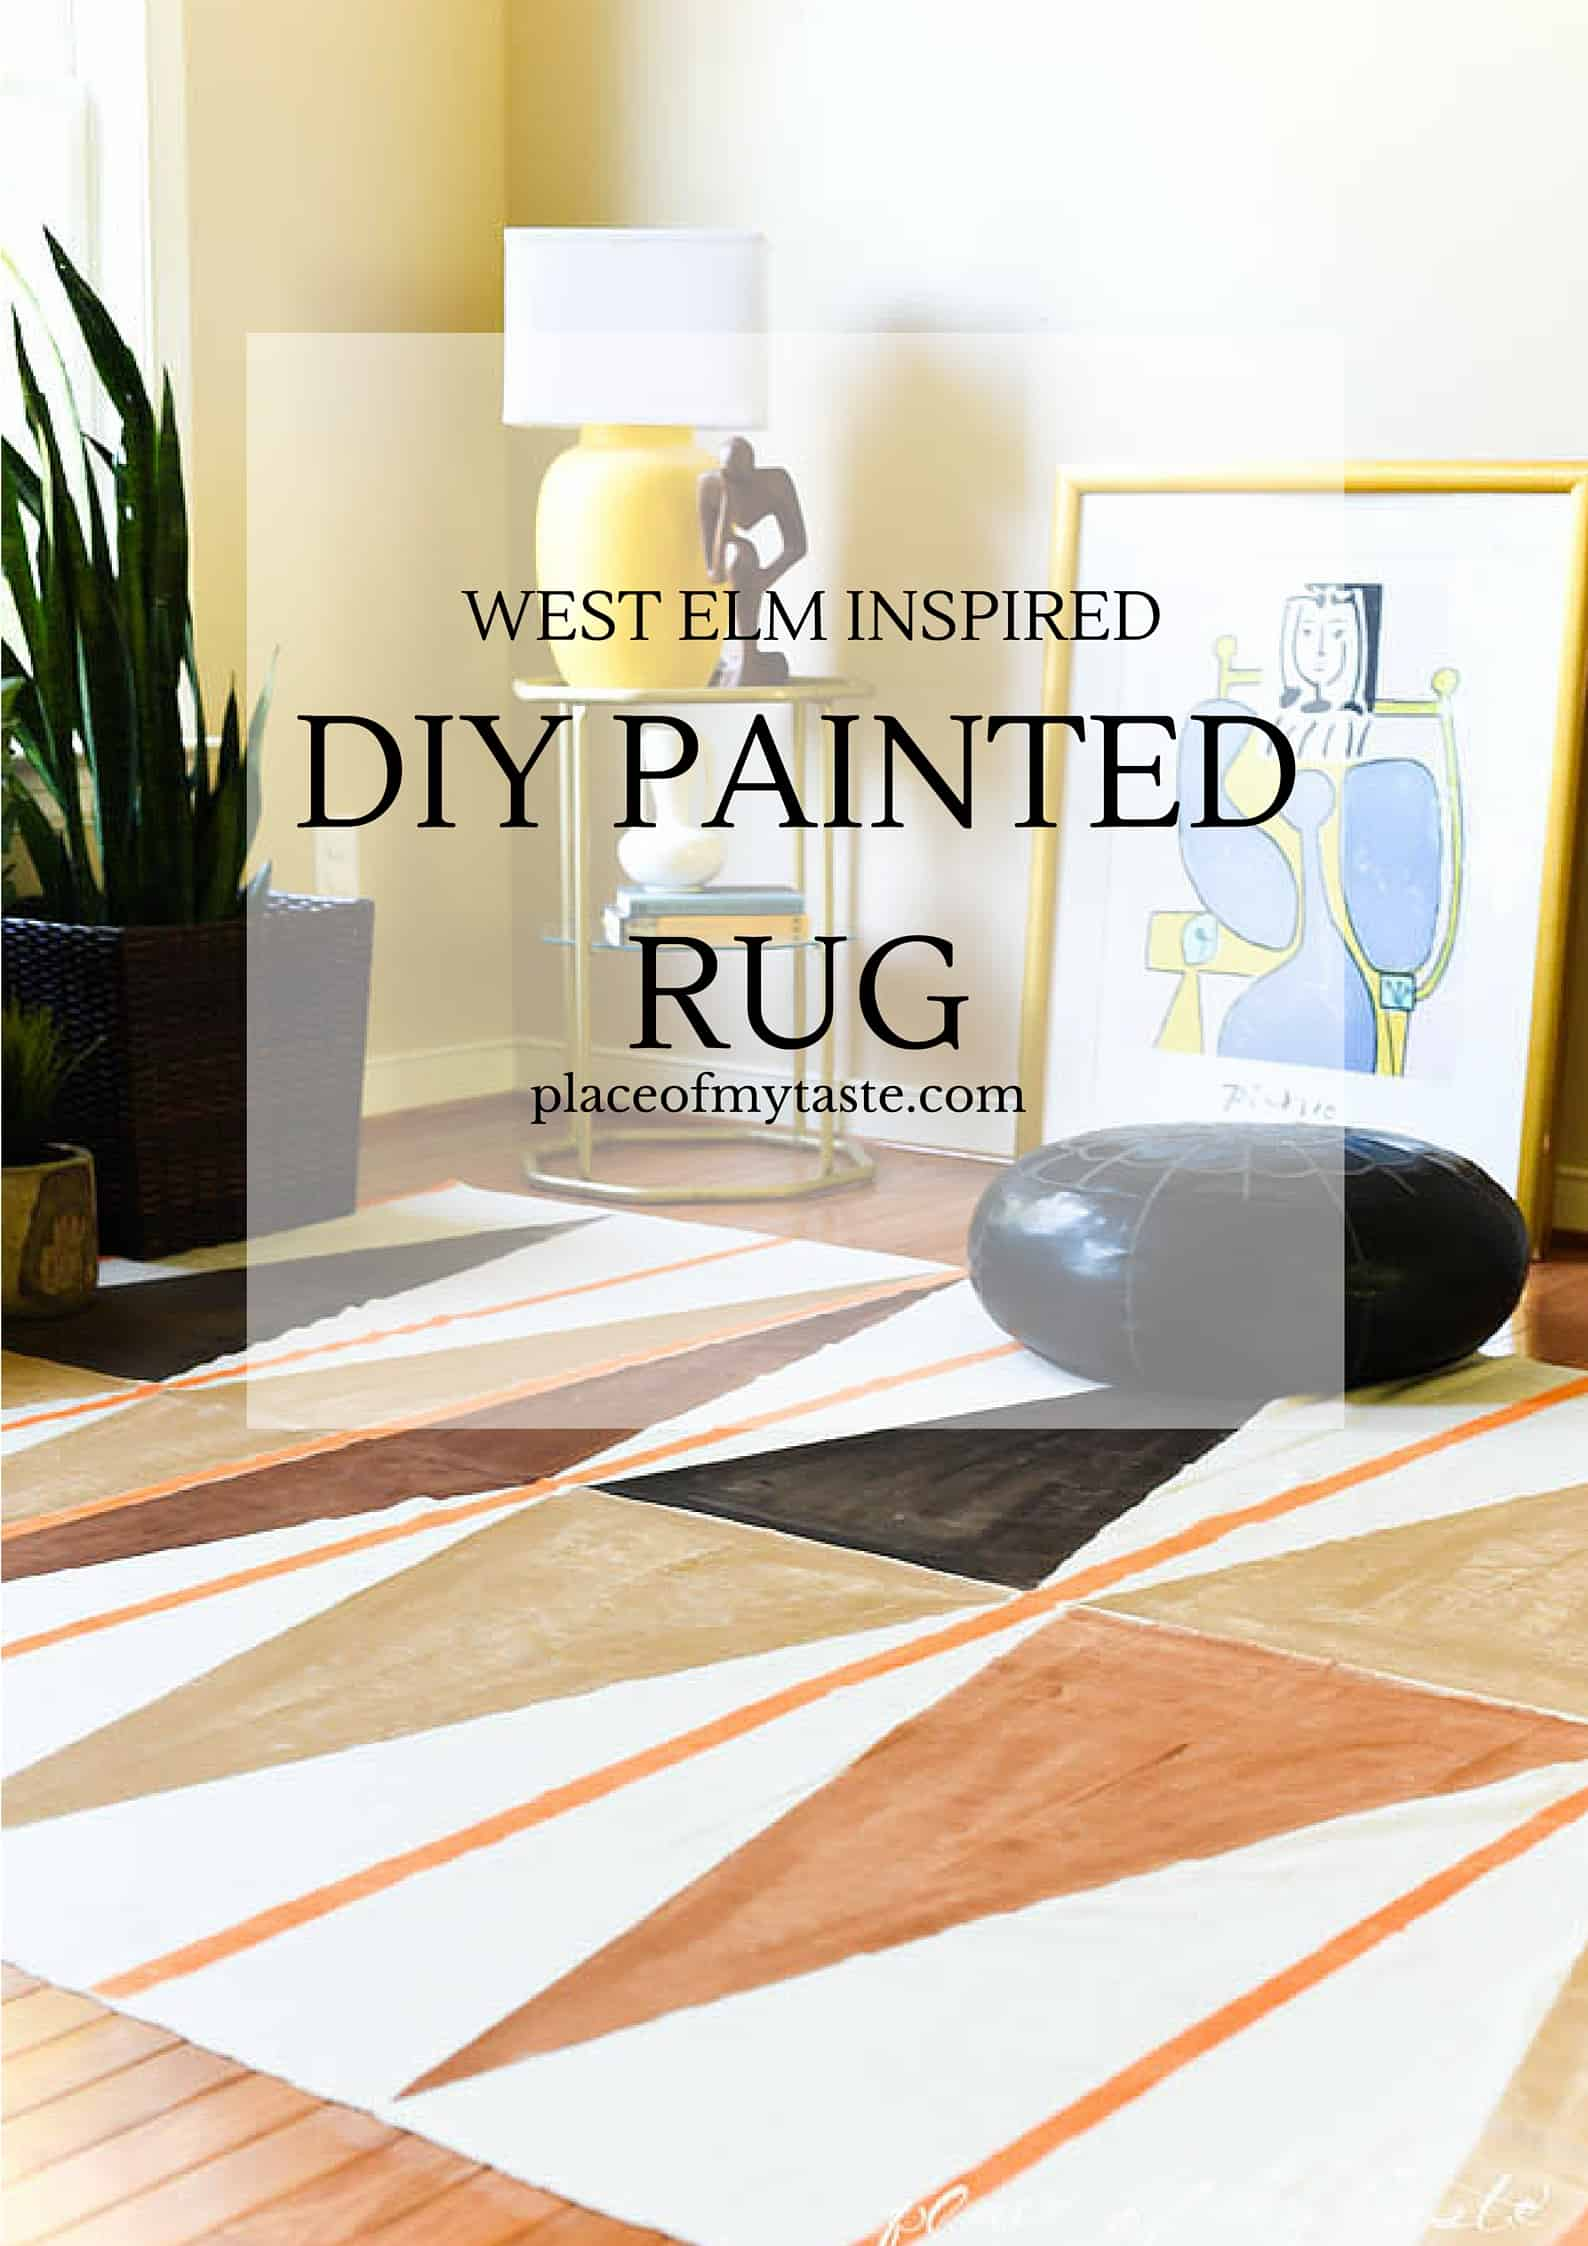 diy painted rug1